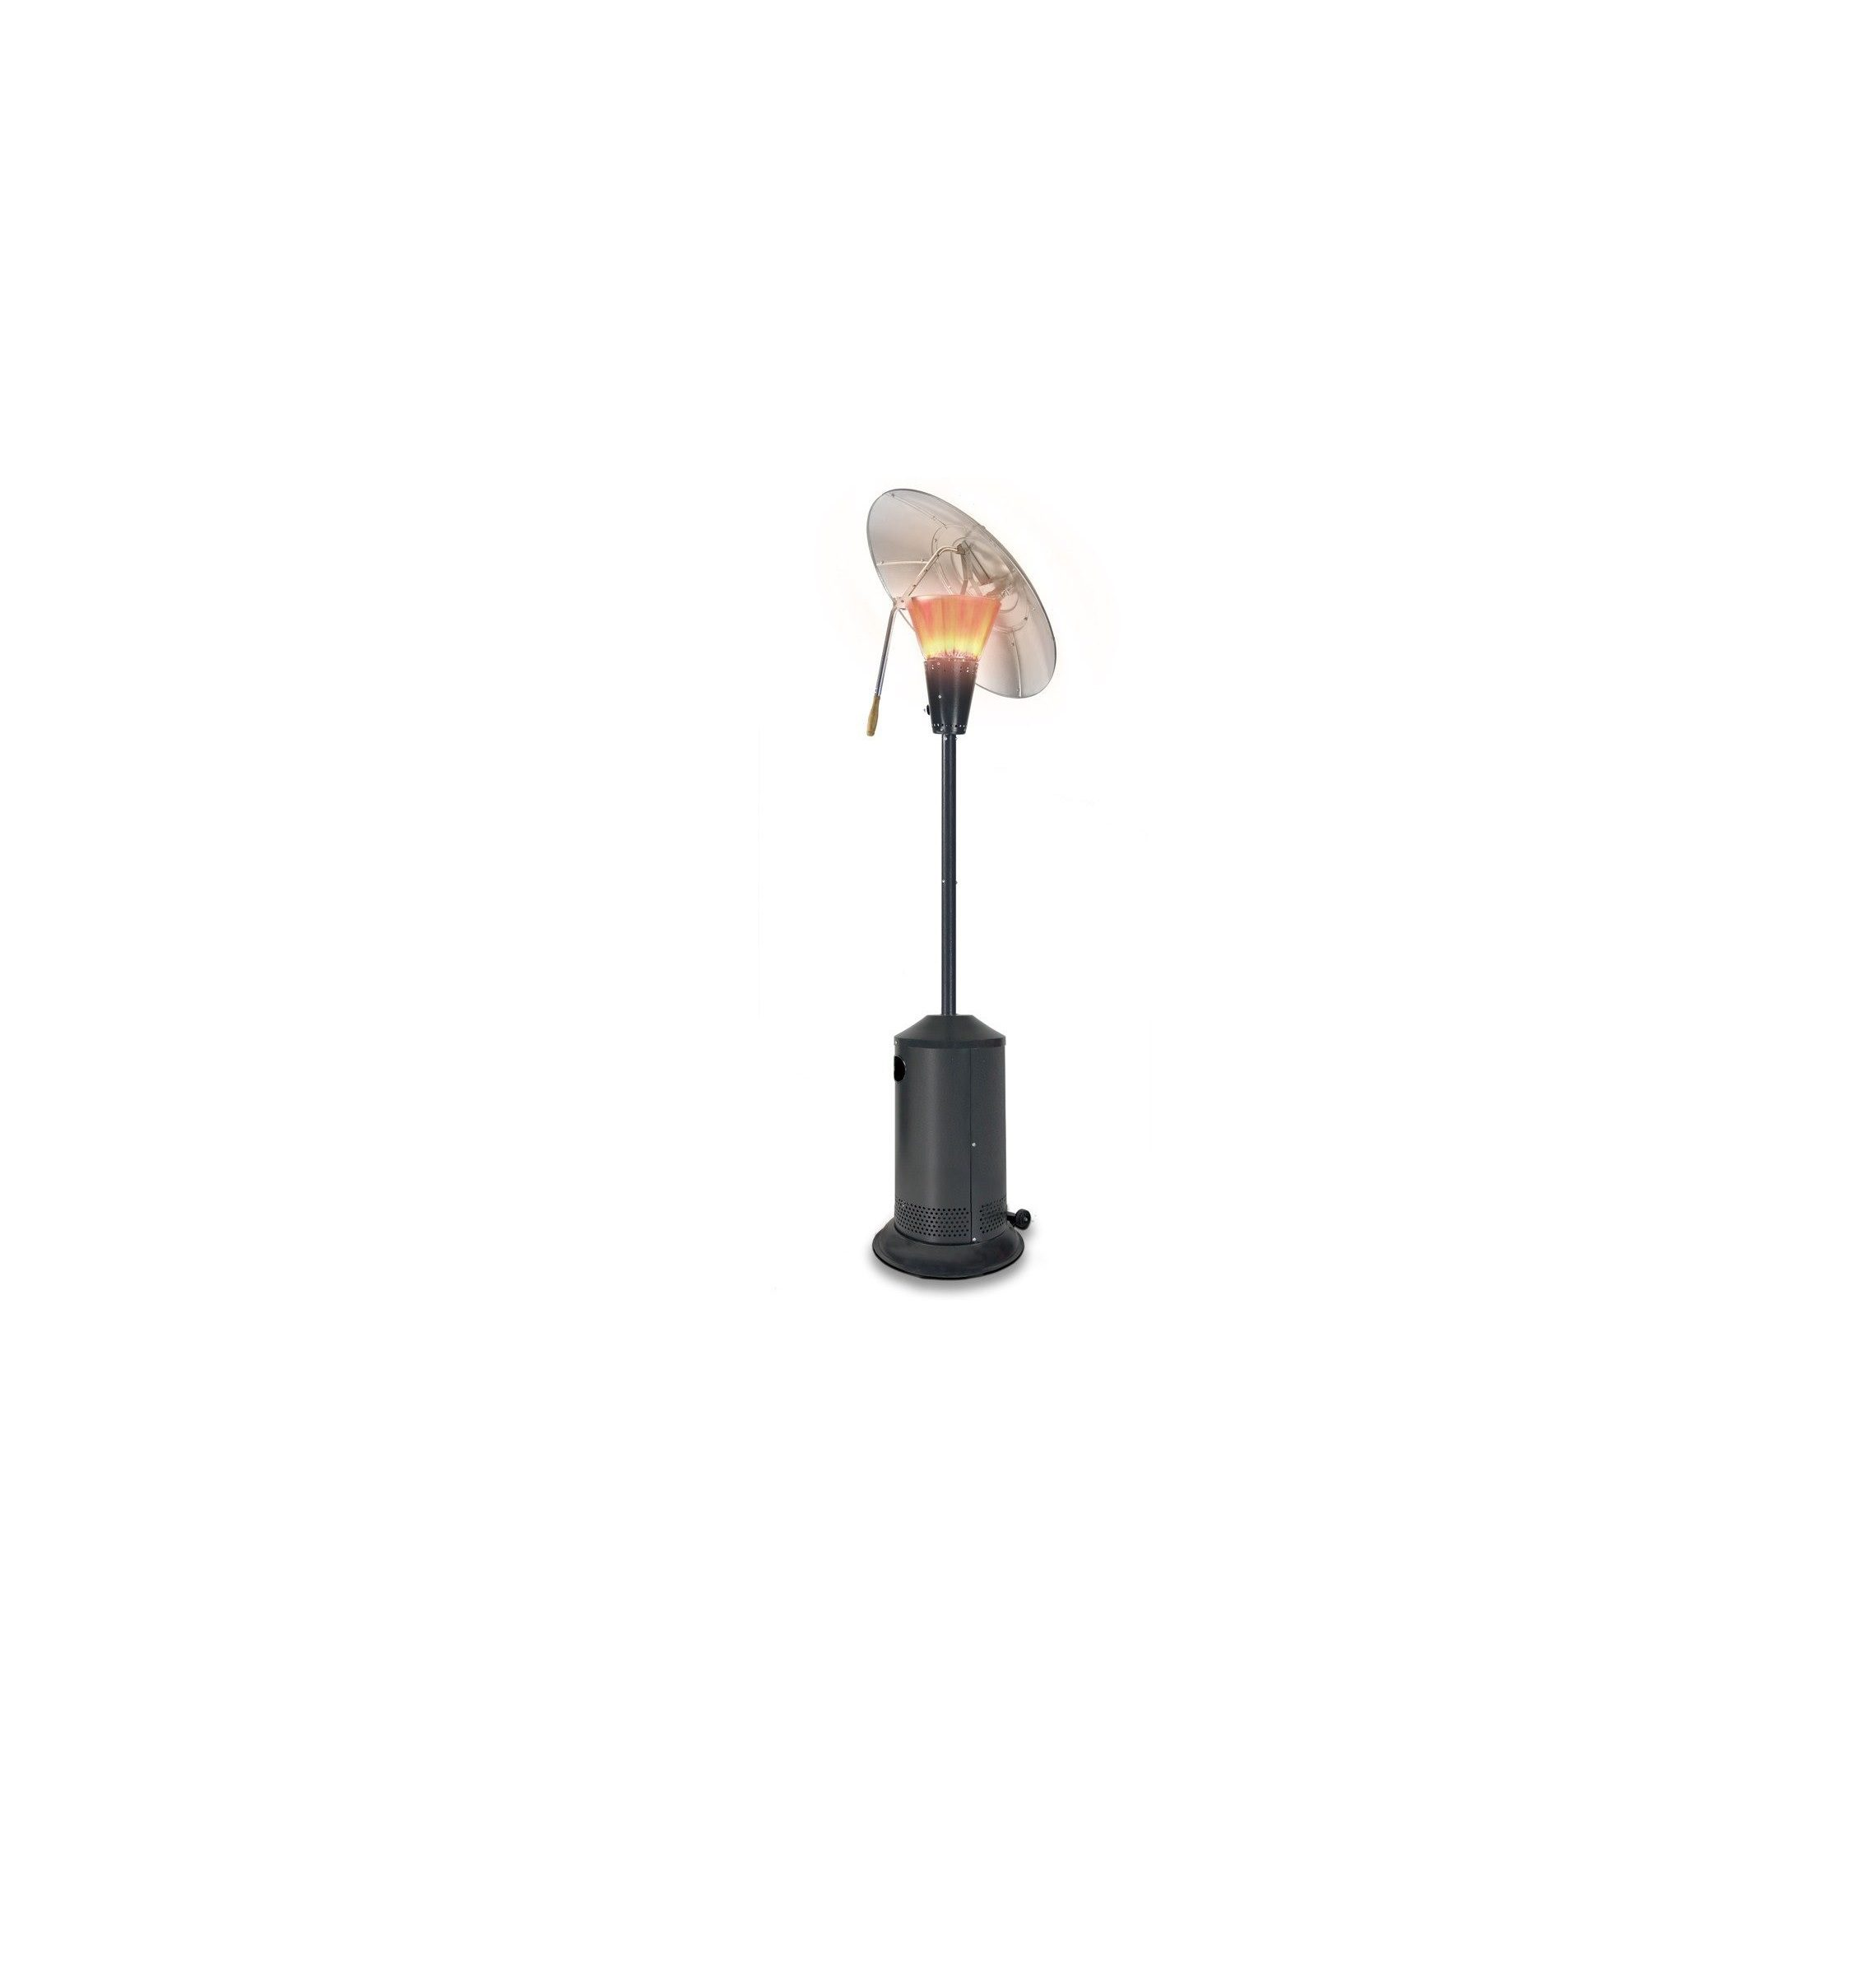 Sahara 13Kw Heat Focus Patio Heater Black